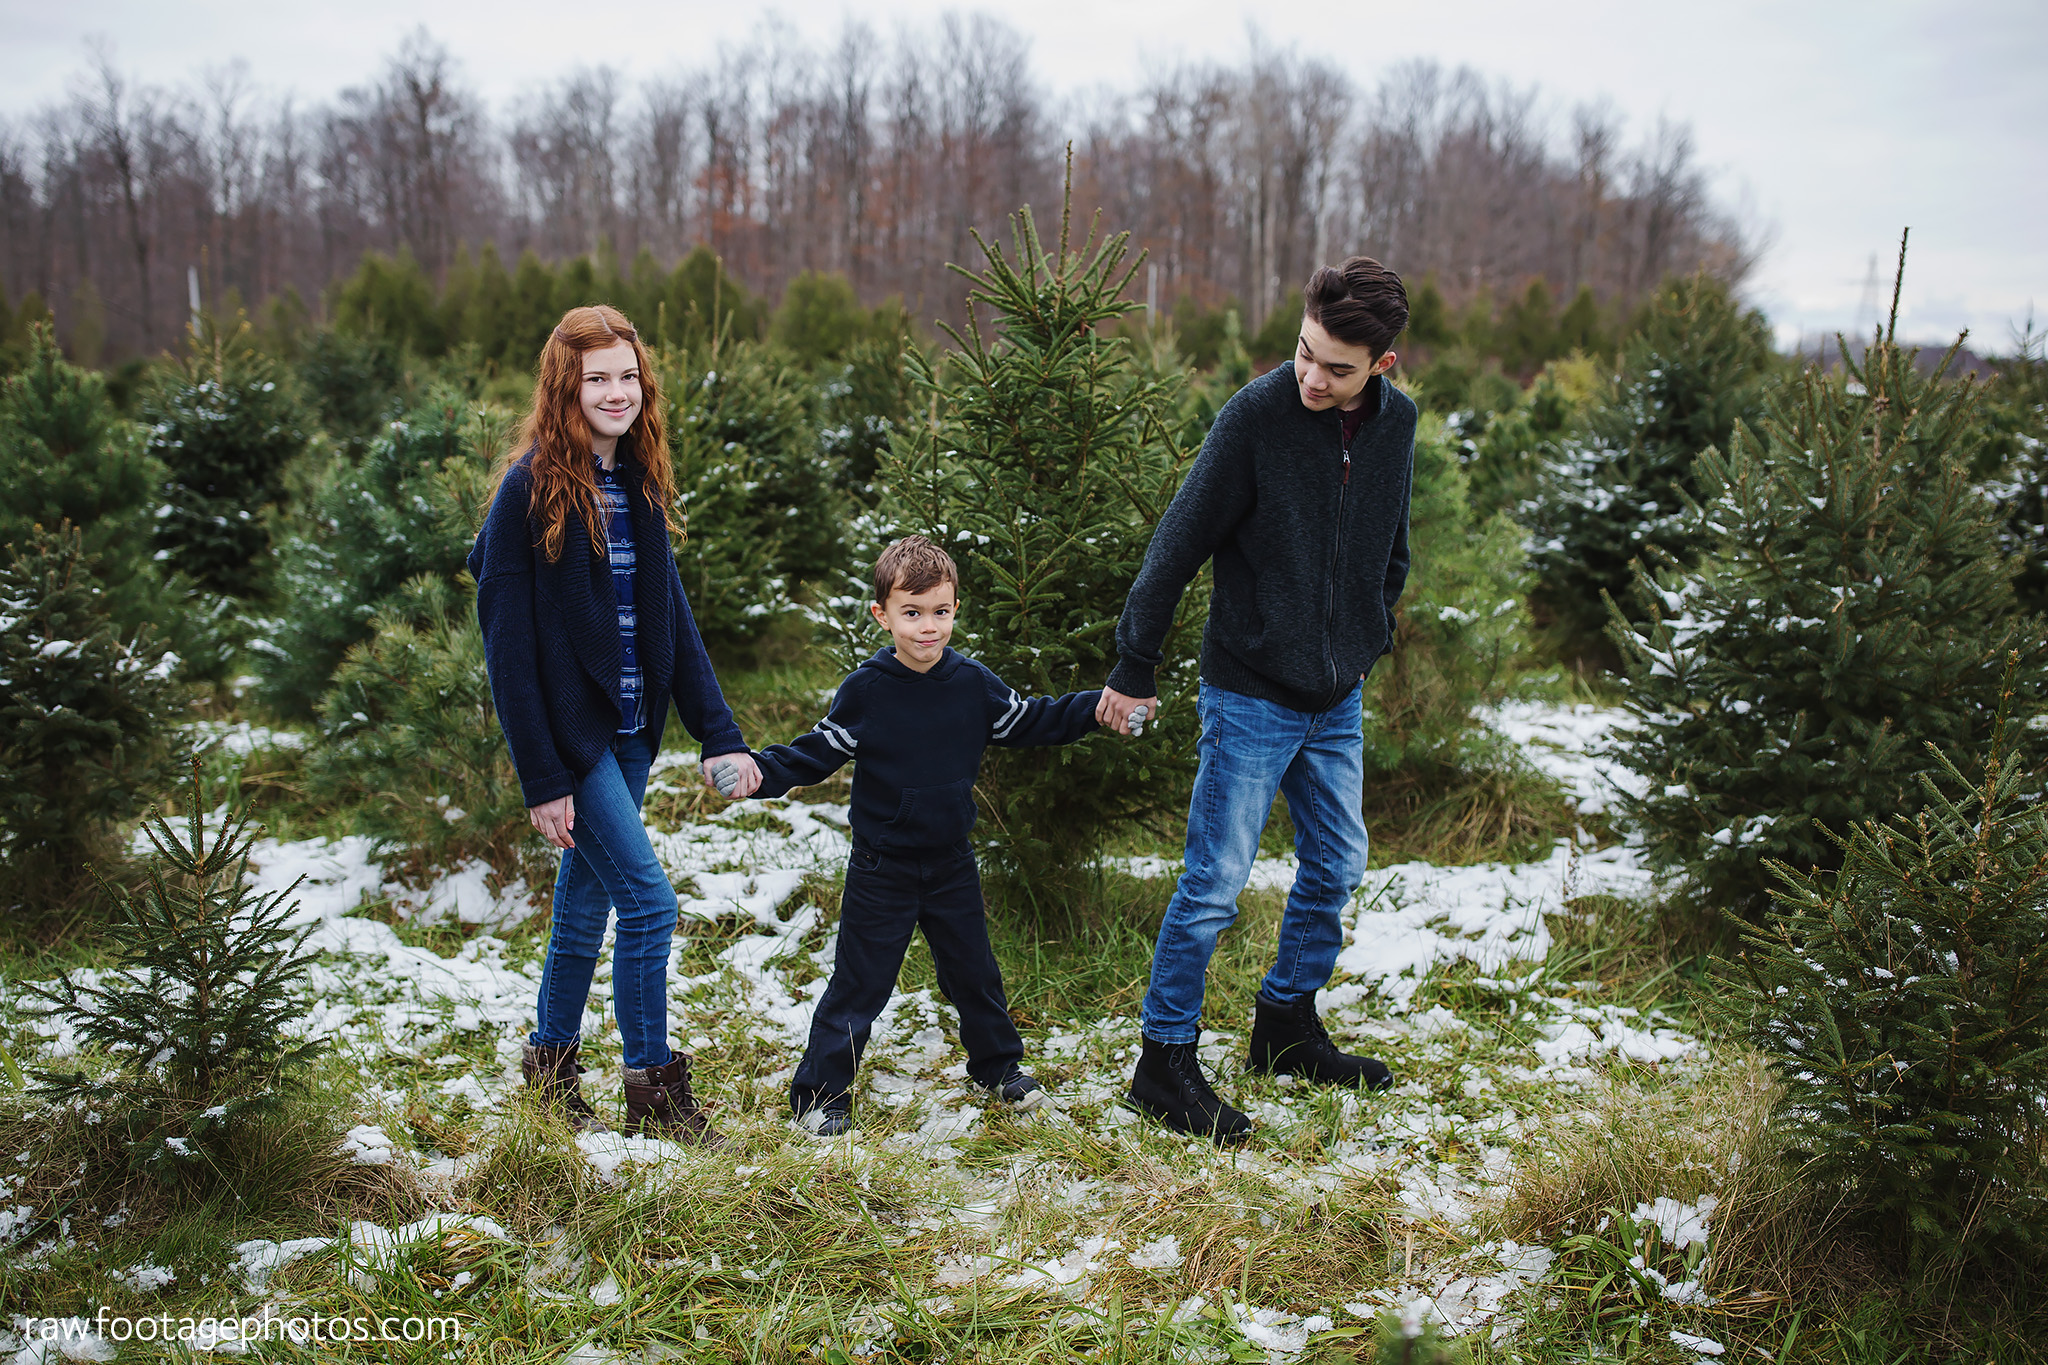 london_ontario_family_photographer-raw_footage_photography-tree_farm_minis-christmas_sessions-winter0022.jpg